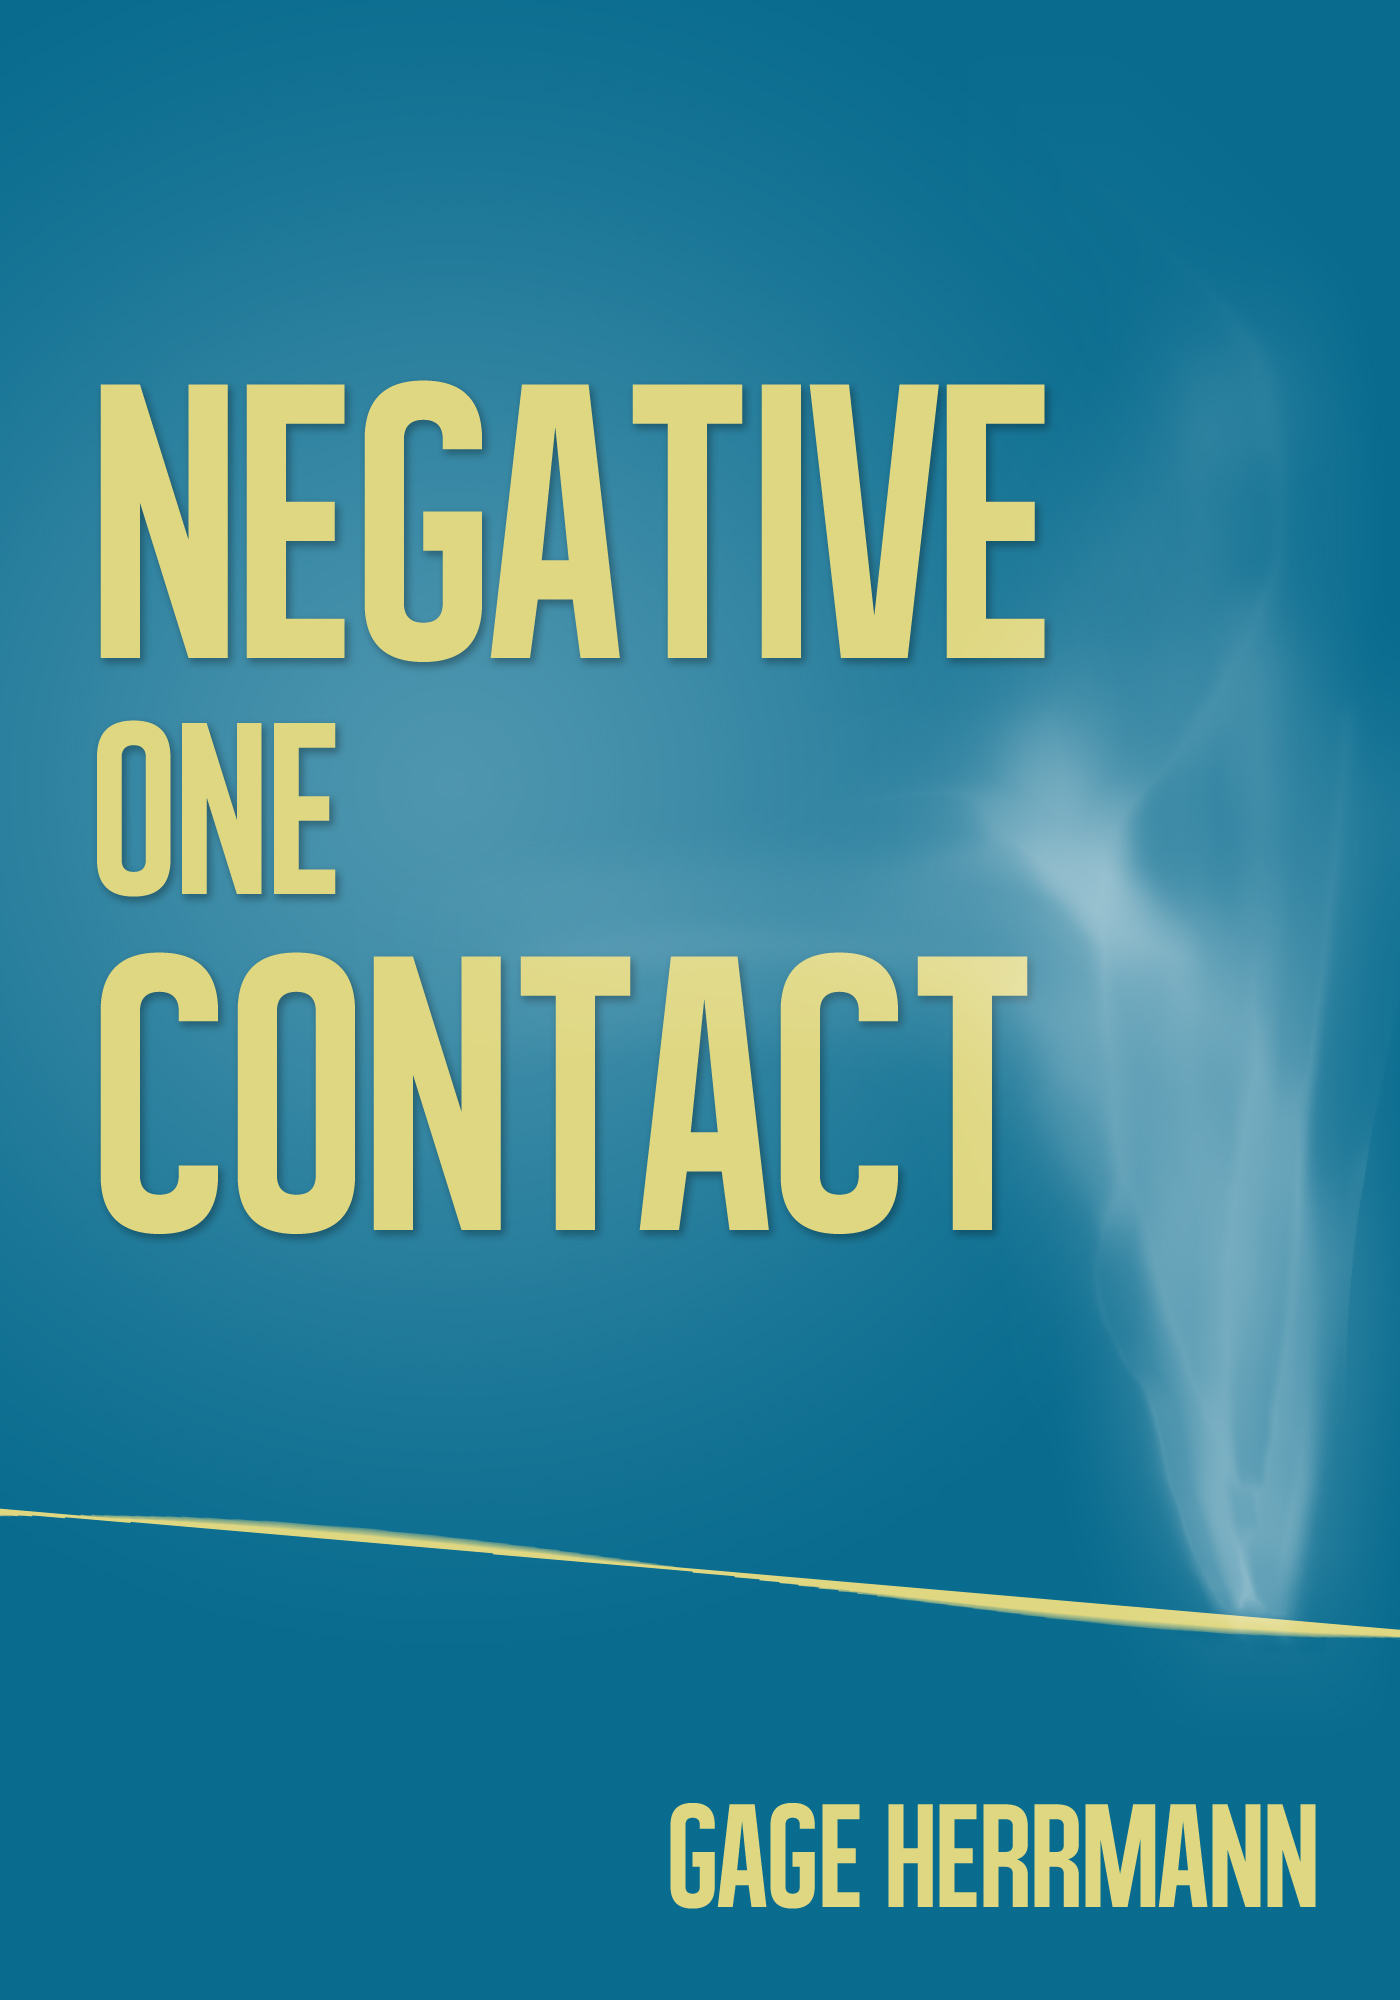 Negative One Contact by Gage Herrmann, Cover